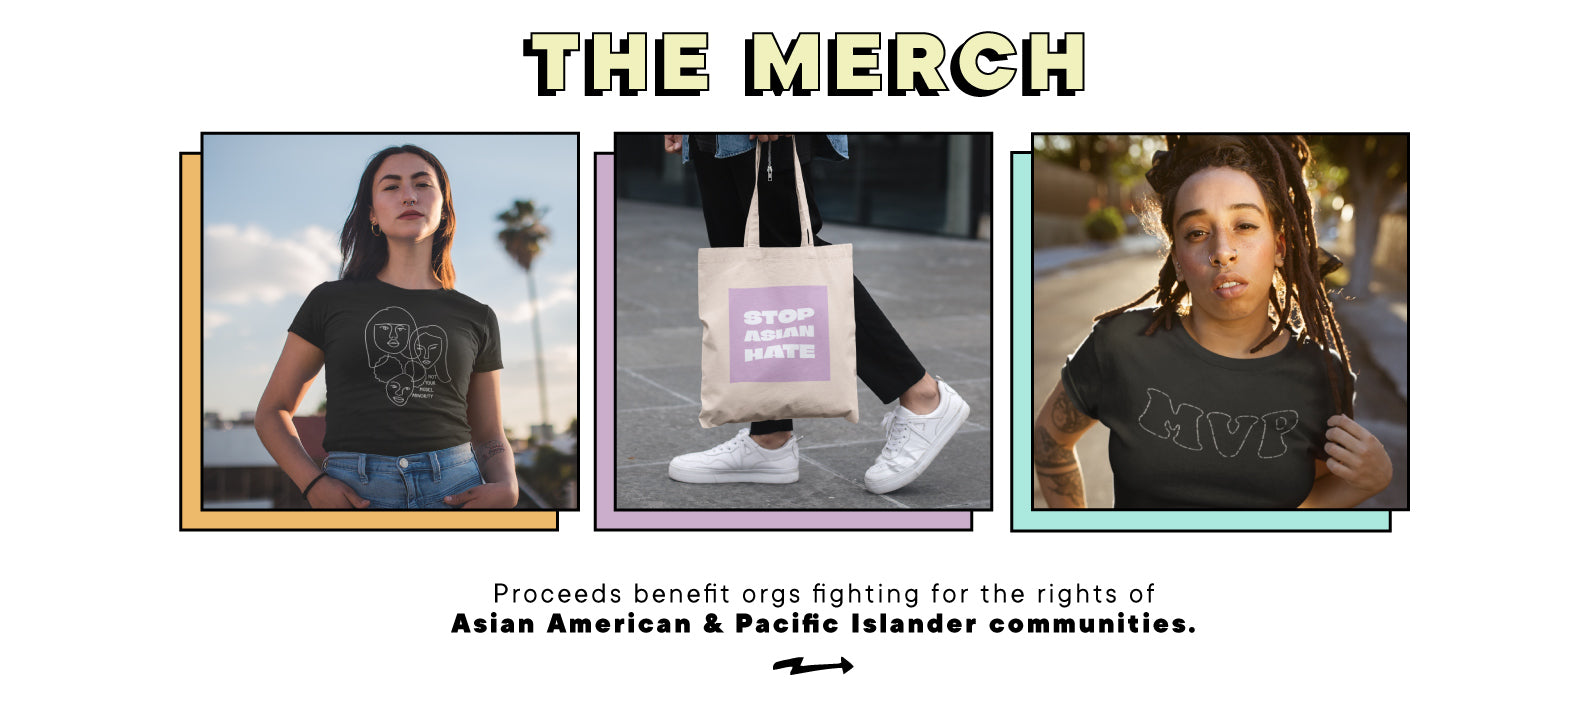 Shop the merch. Proceeds benefit orgs fighting for the rights of Asian American & Pacific Islander communities.